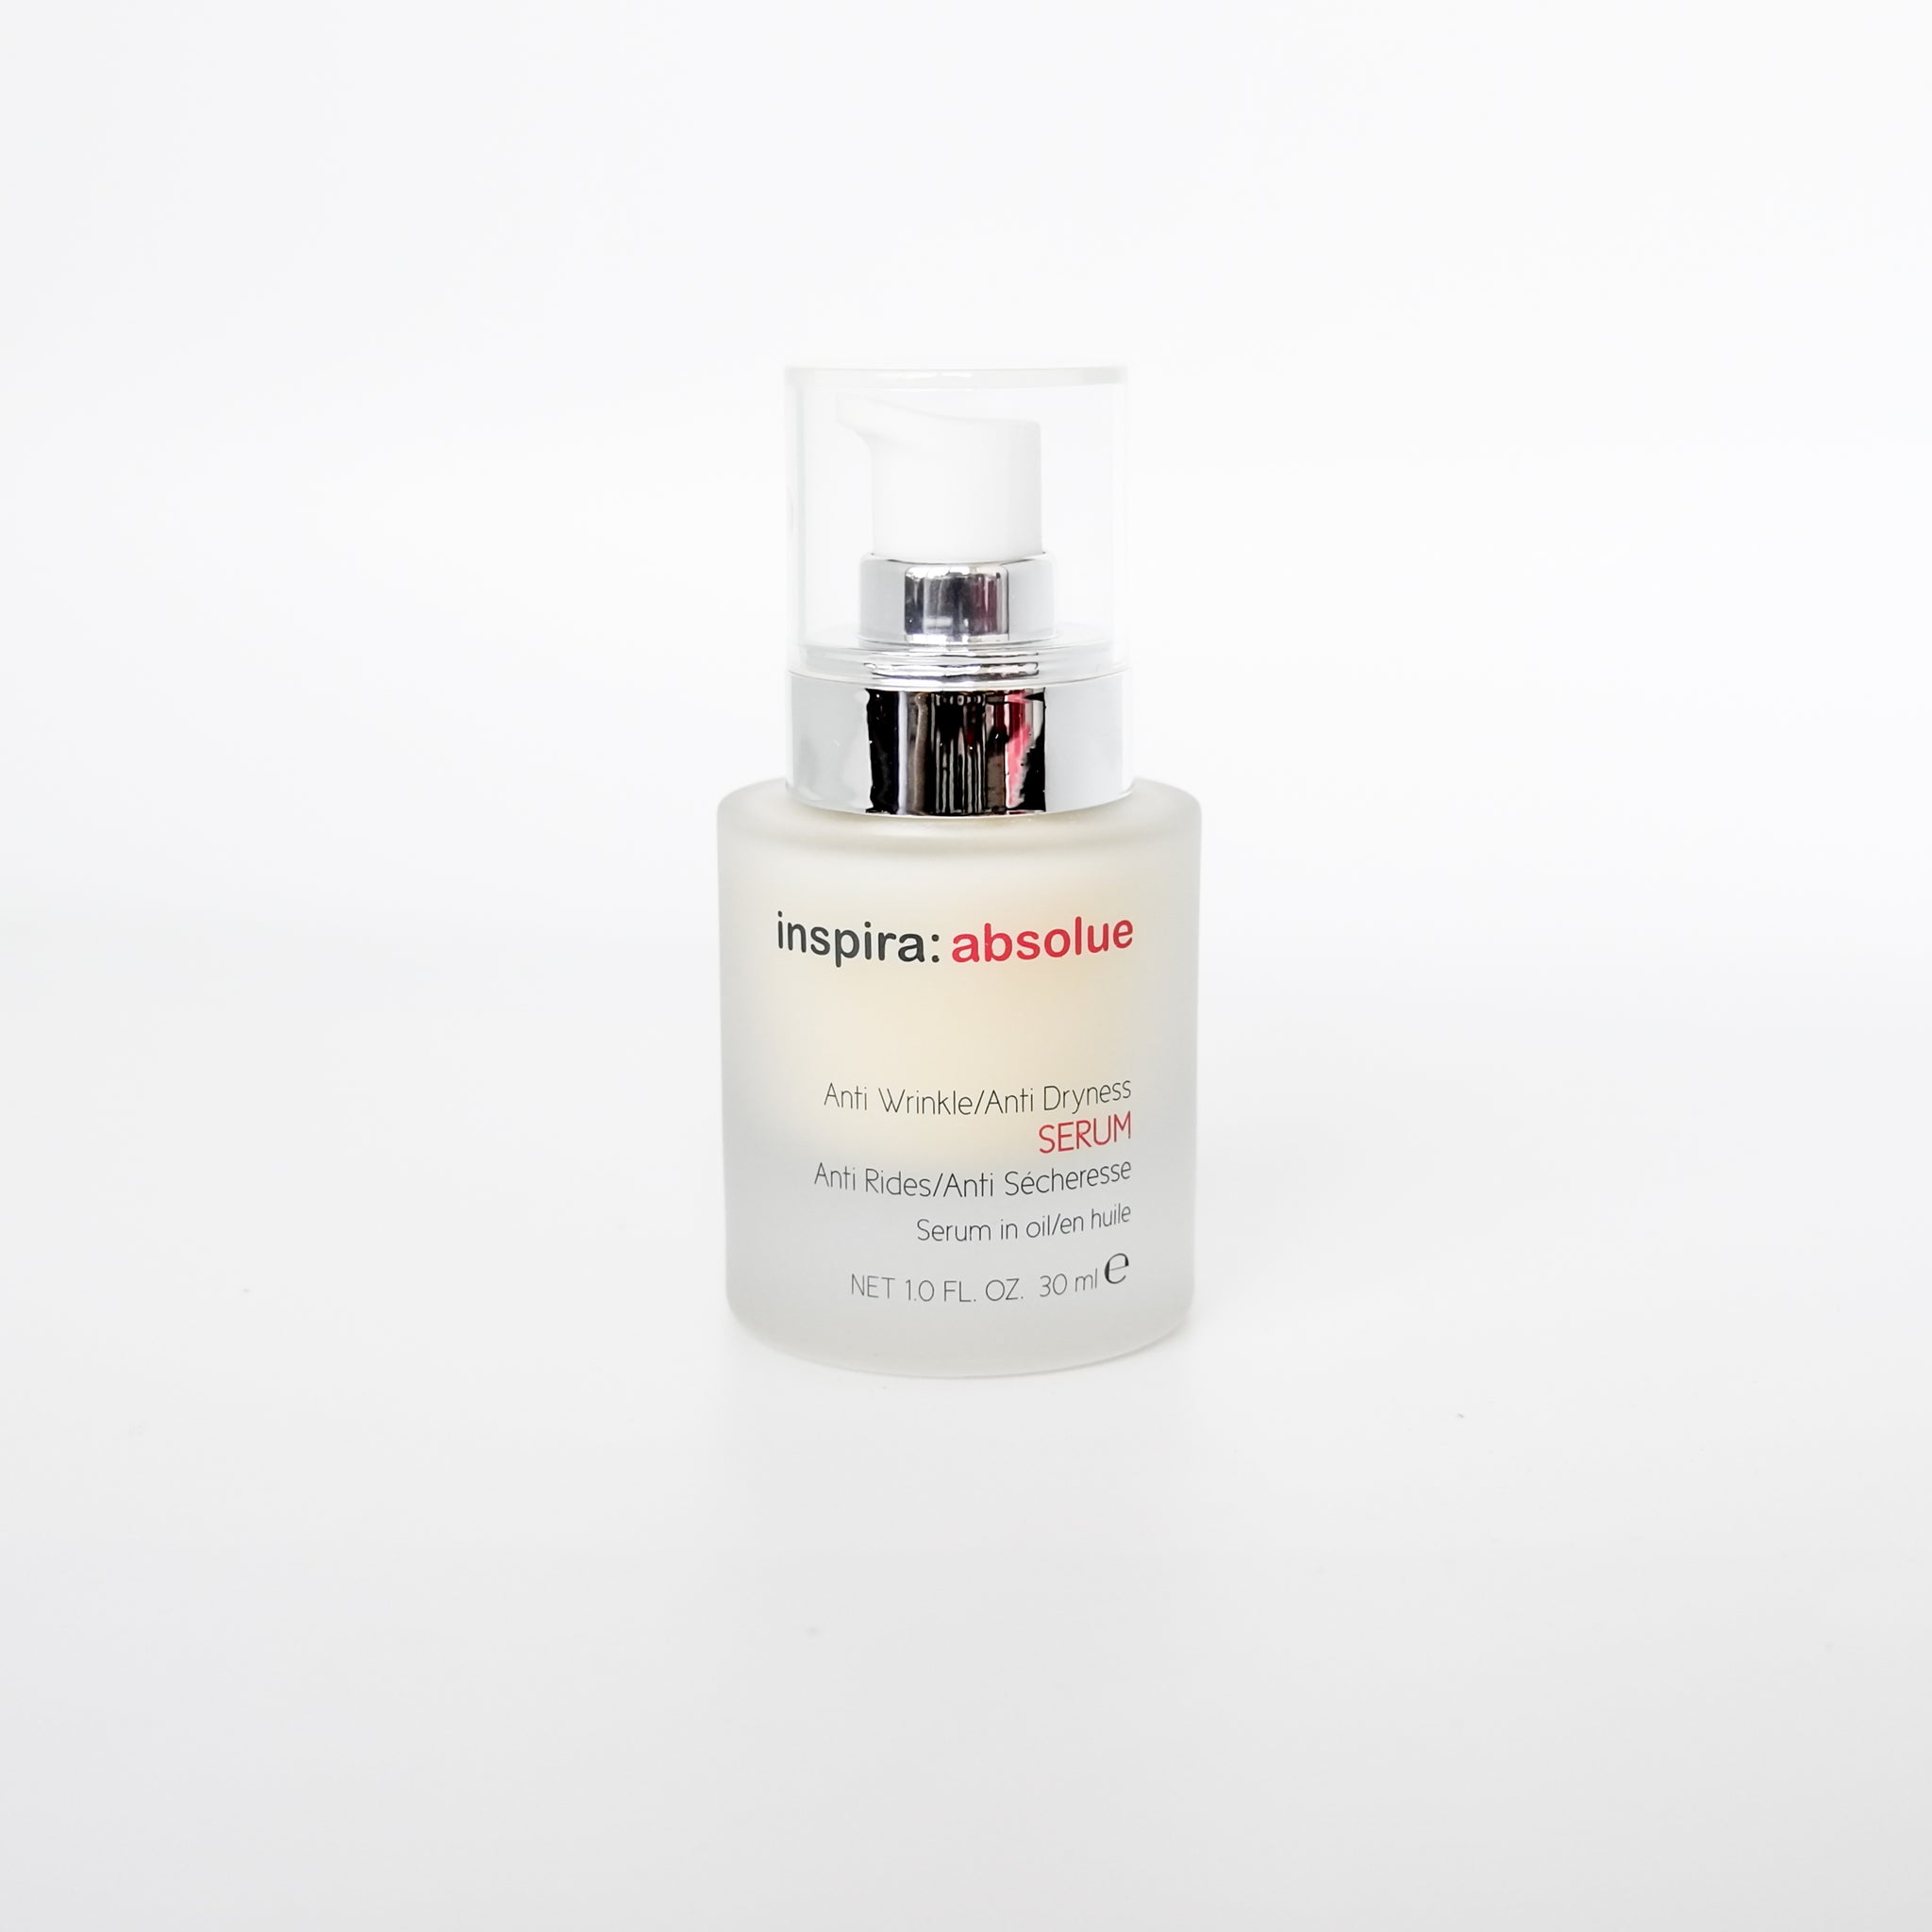 inspira:absolue Anti-wrinkle/anti-dryness serum, Serums, Inspira Absolue - Astrid Wylde